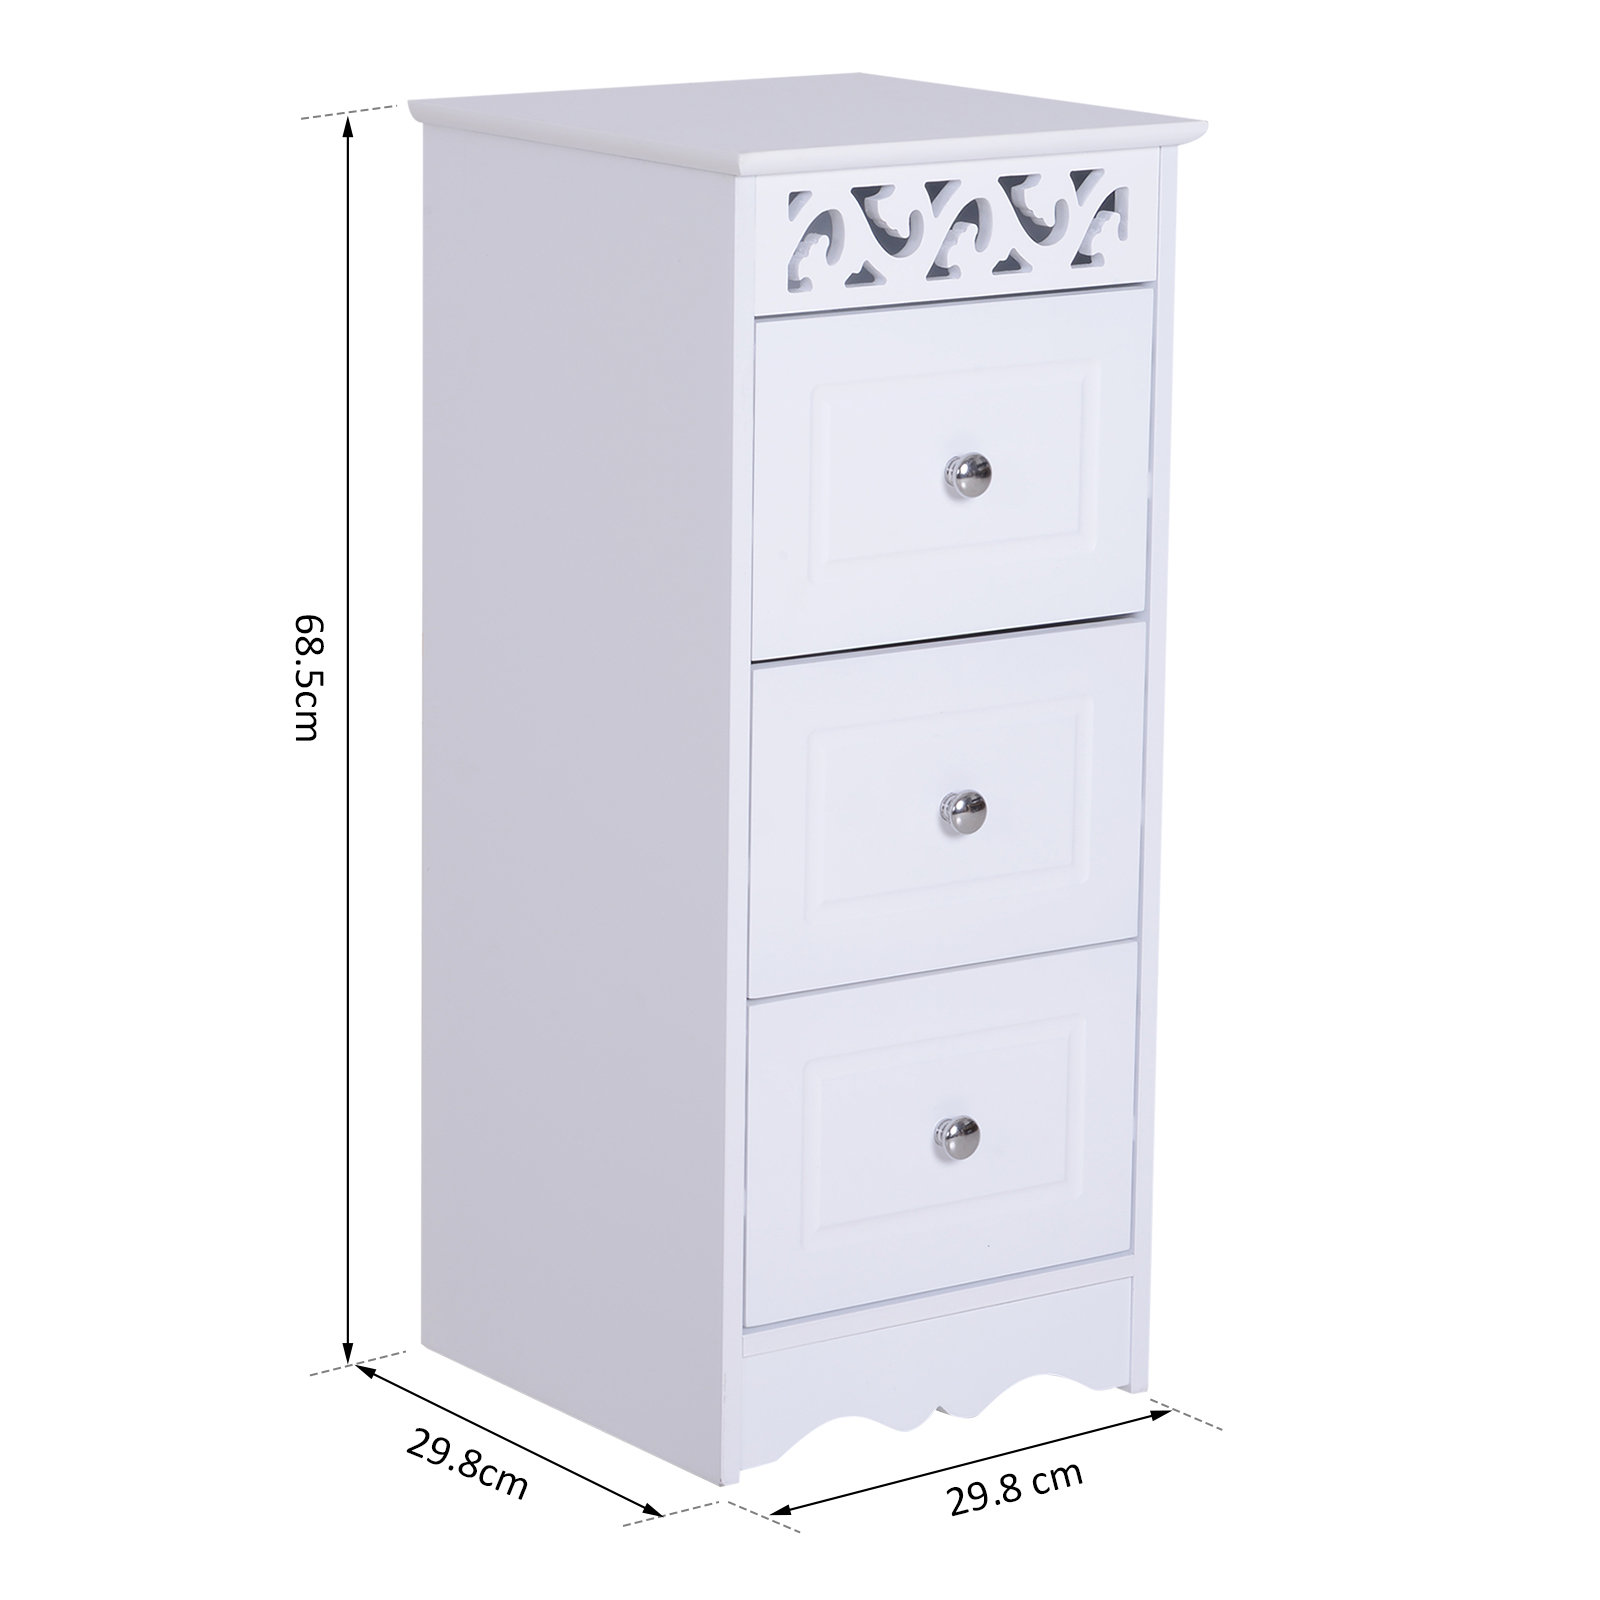 Bathroom-Cabinet-Corner-Shelf-Unit-Drawers-Tower-Cupboard-Wood-Storage-White thumbnail 3